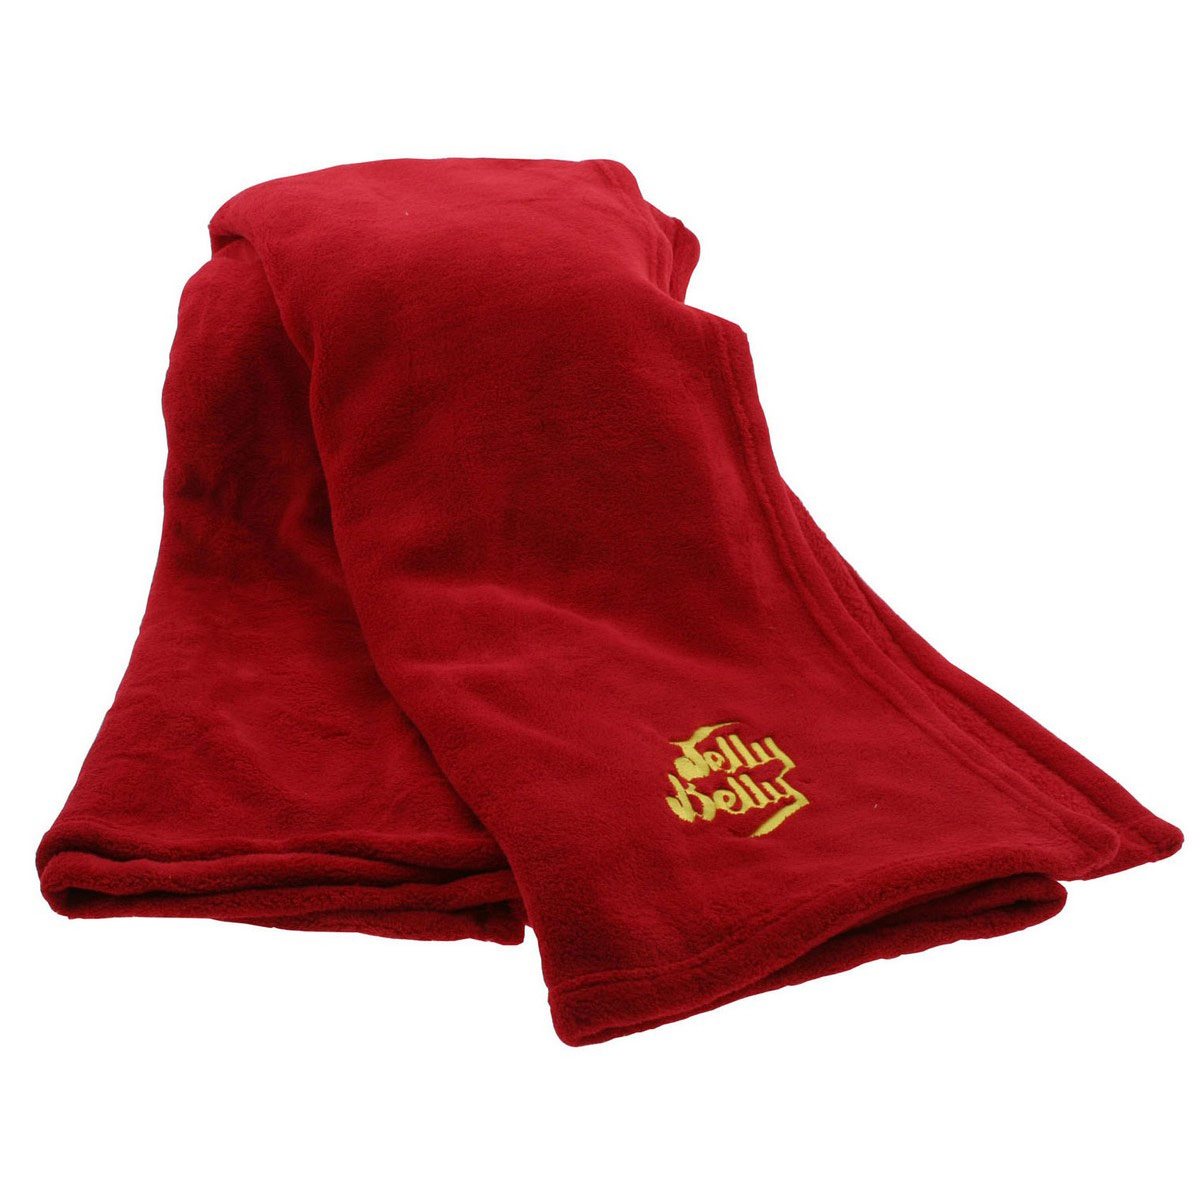 Jelly Belly Blanket Fleece - Red